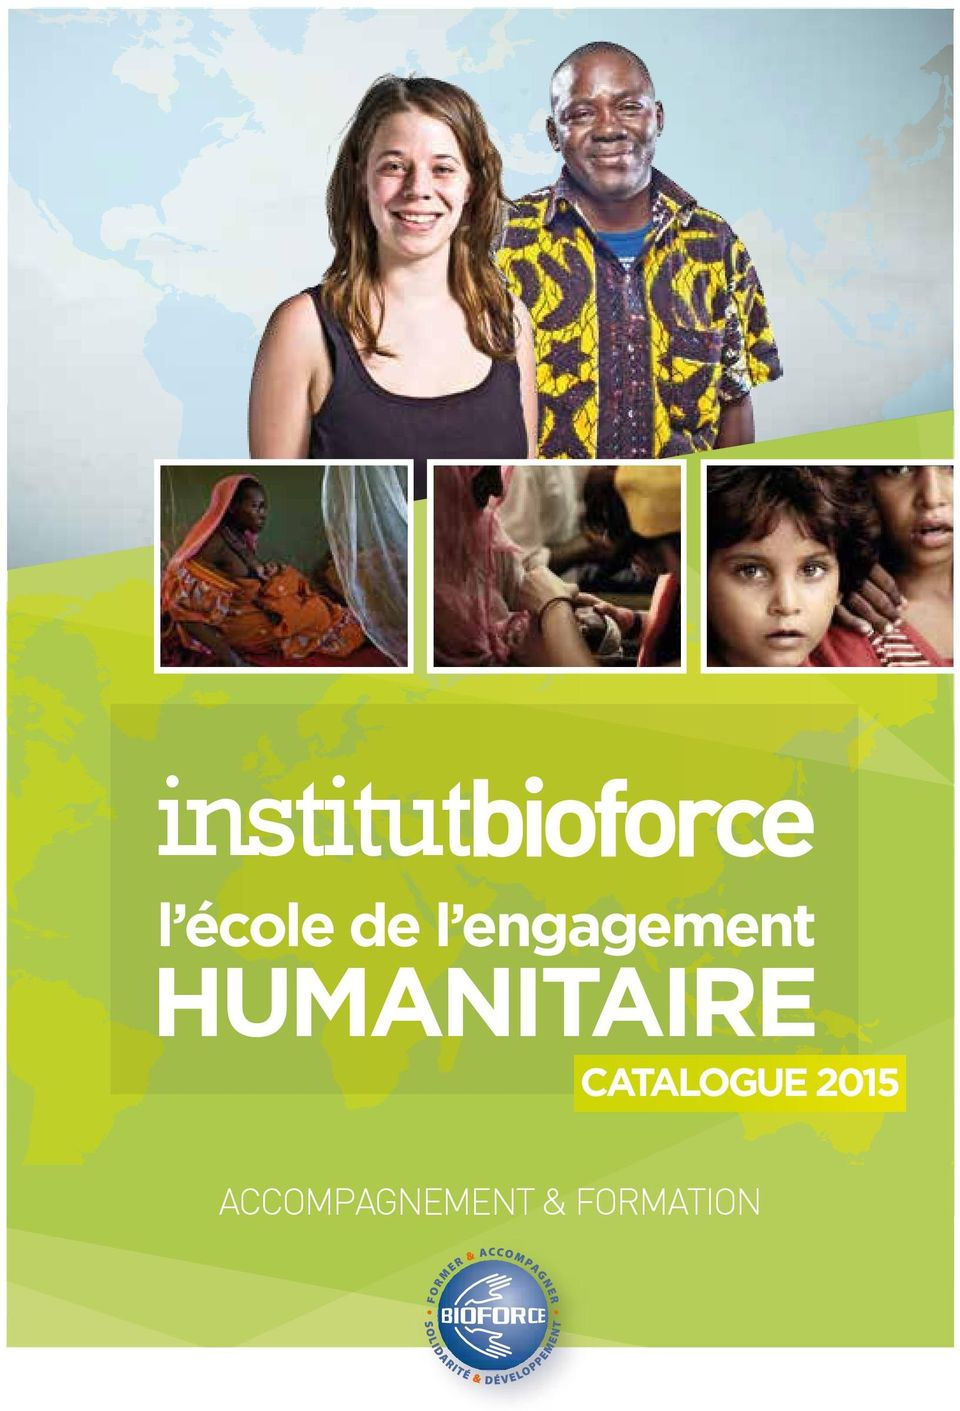 HUMANITAIRE CATALOGUE